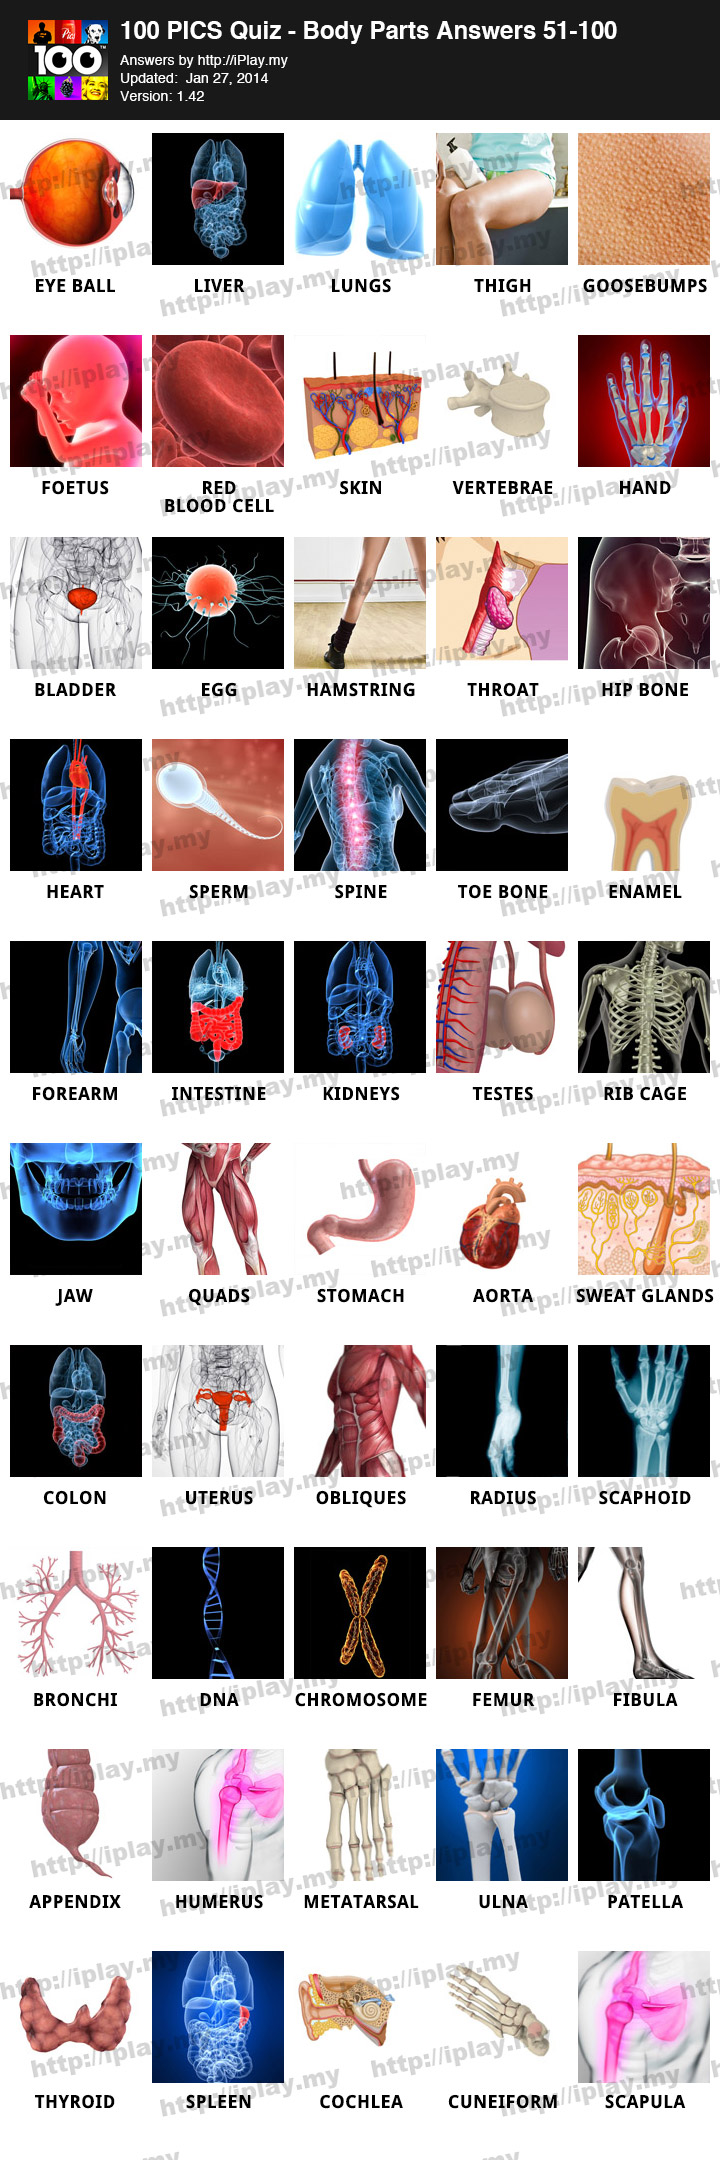 100 pics body parts cheats